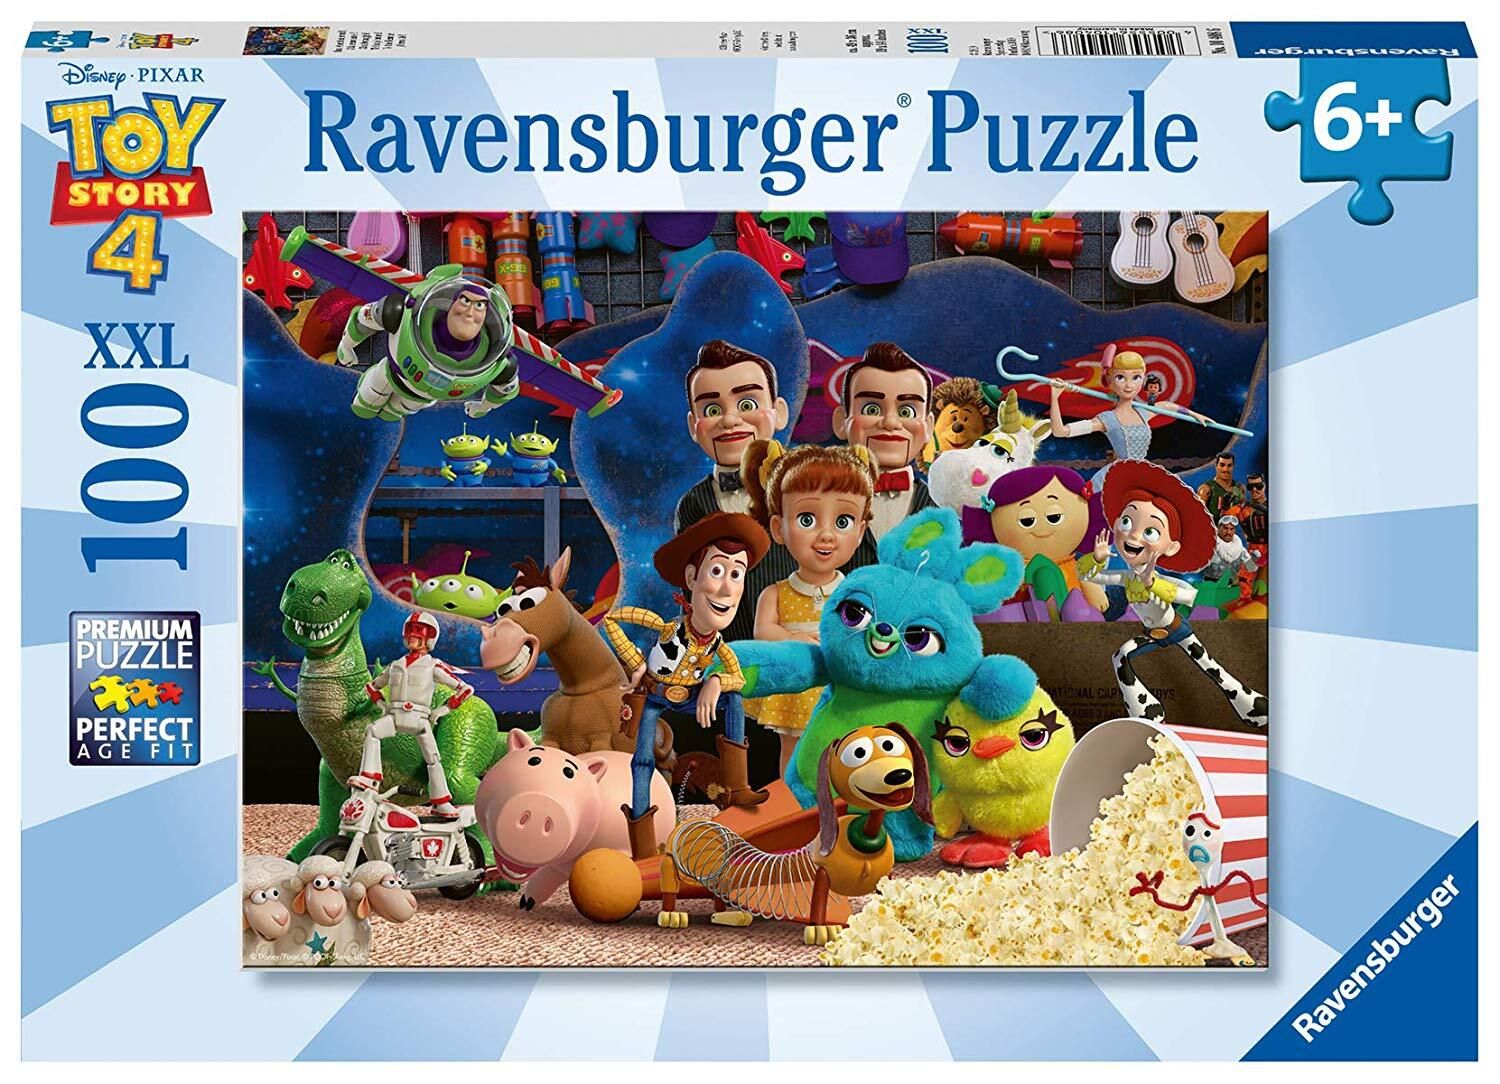 Ravensburger Toy Story 4 To the Rescue Puzzle